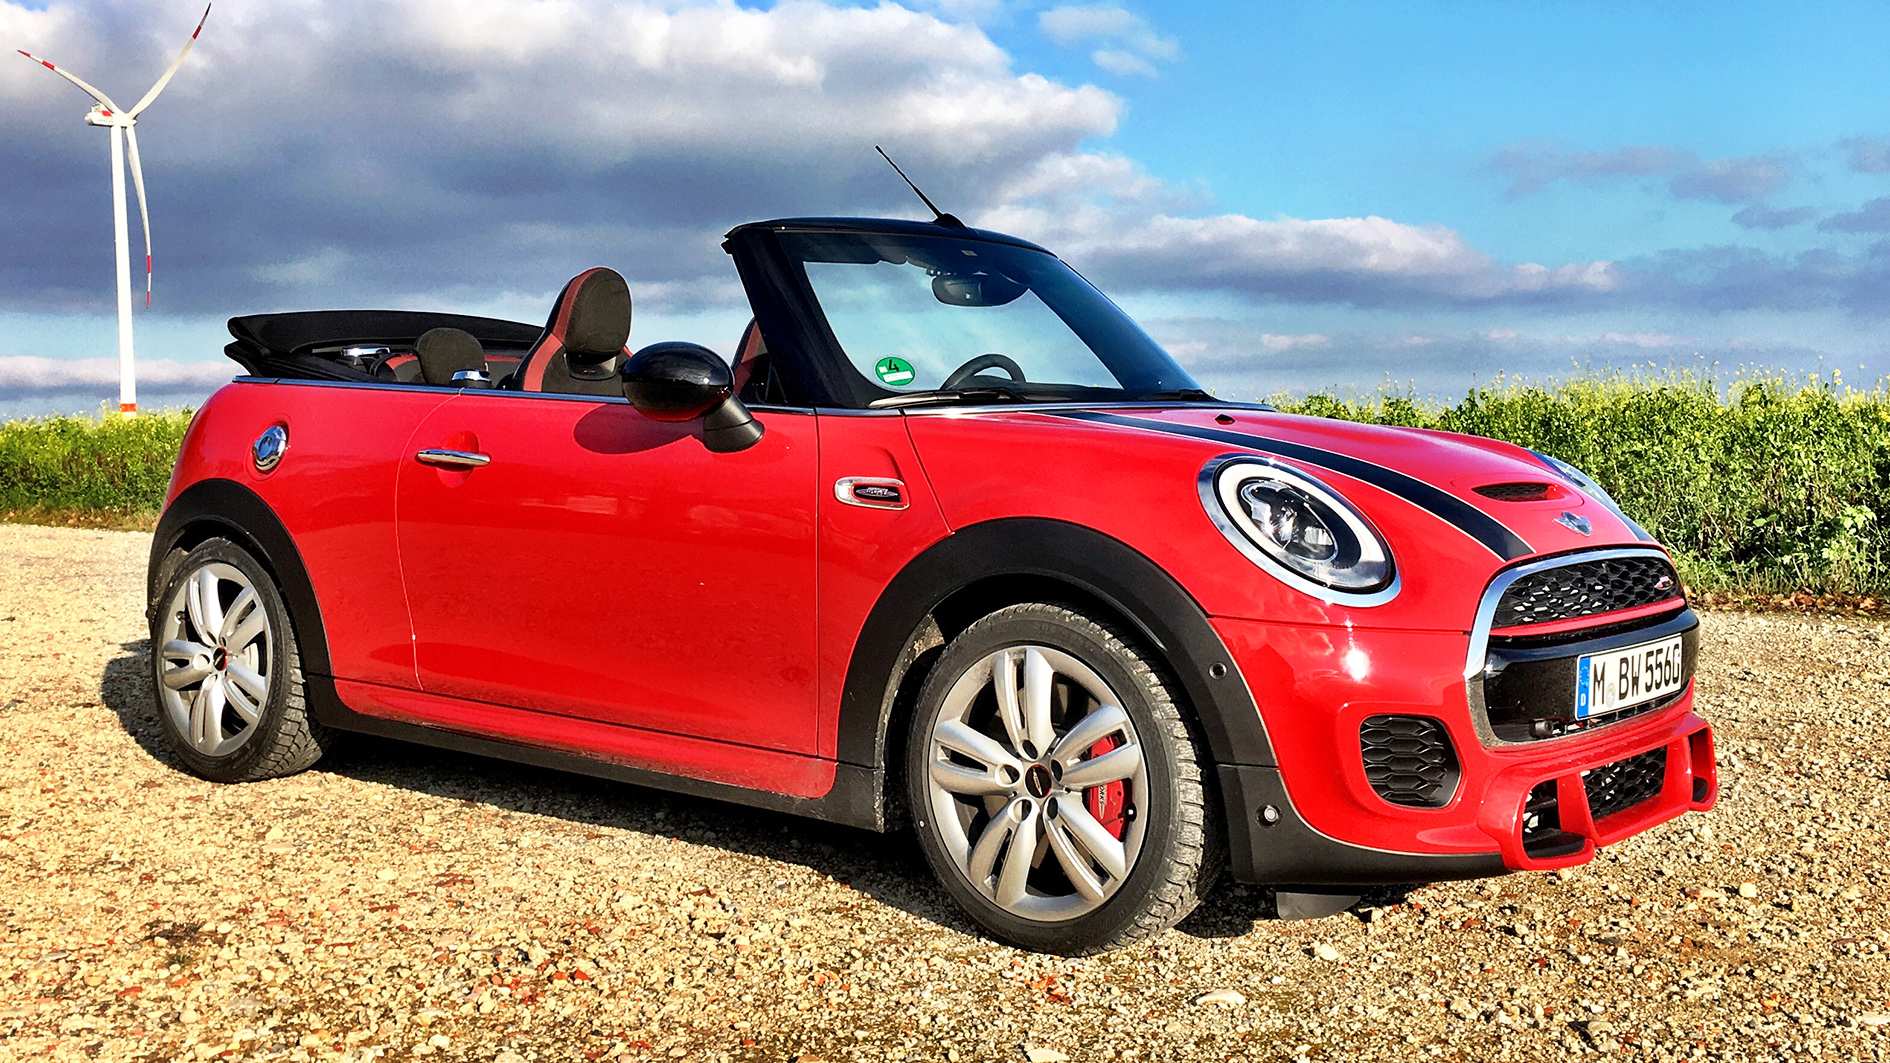 mini cooper john cooper works test drive review driving english free. Black Bedroom Furniture Sets. Home Design Ideas